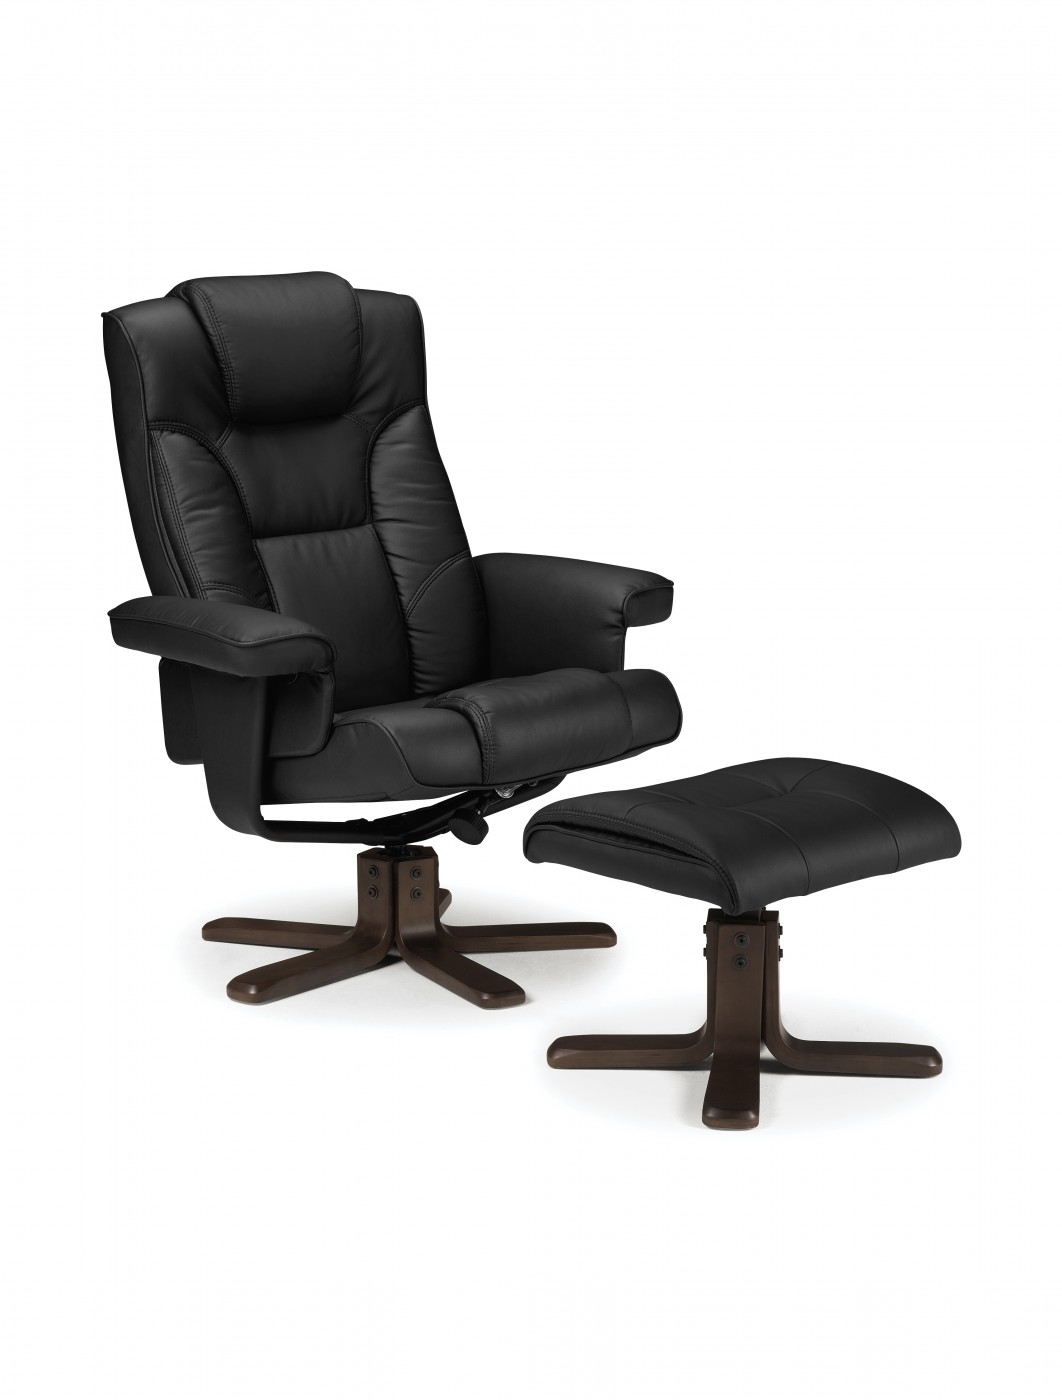 Swivel Recliner Chair Mal001 121 Office Furniture